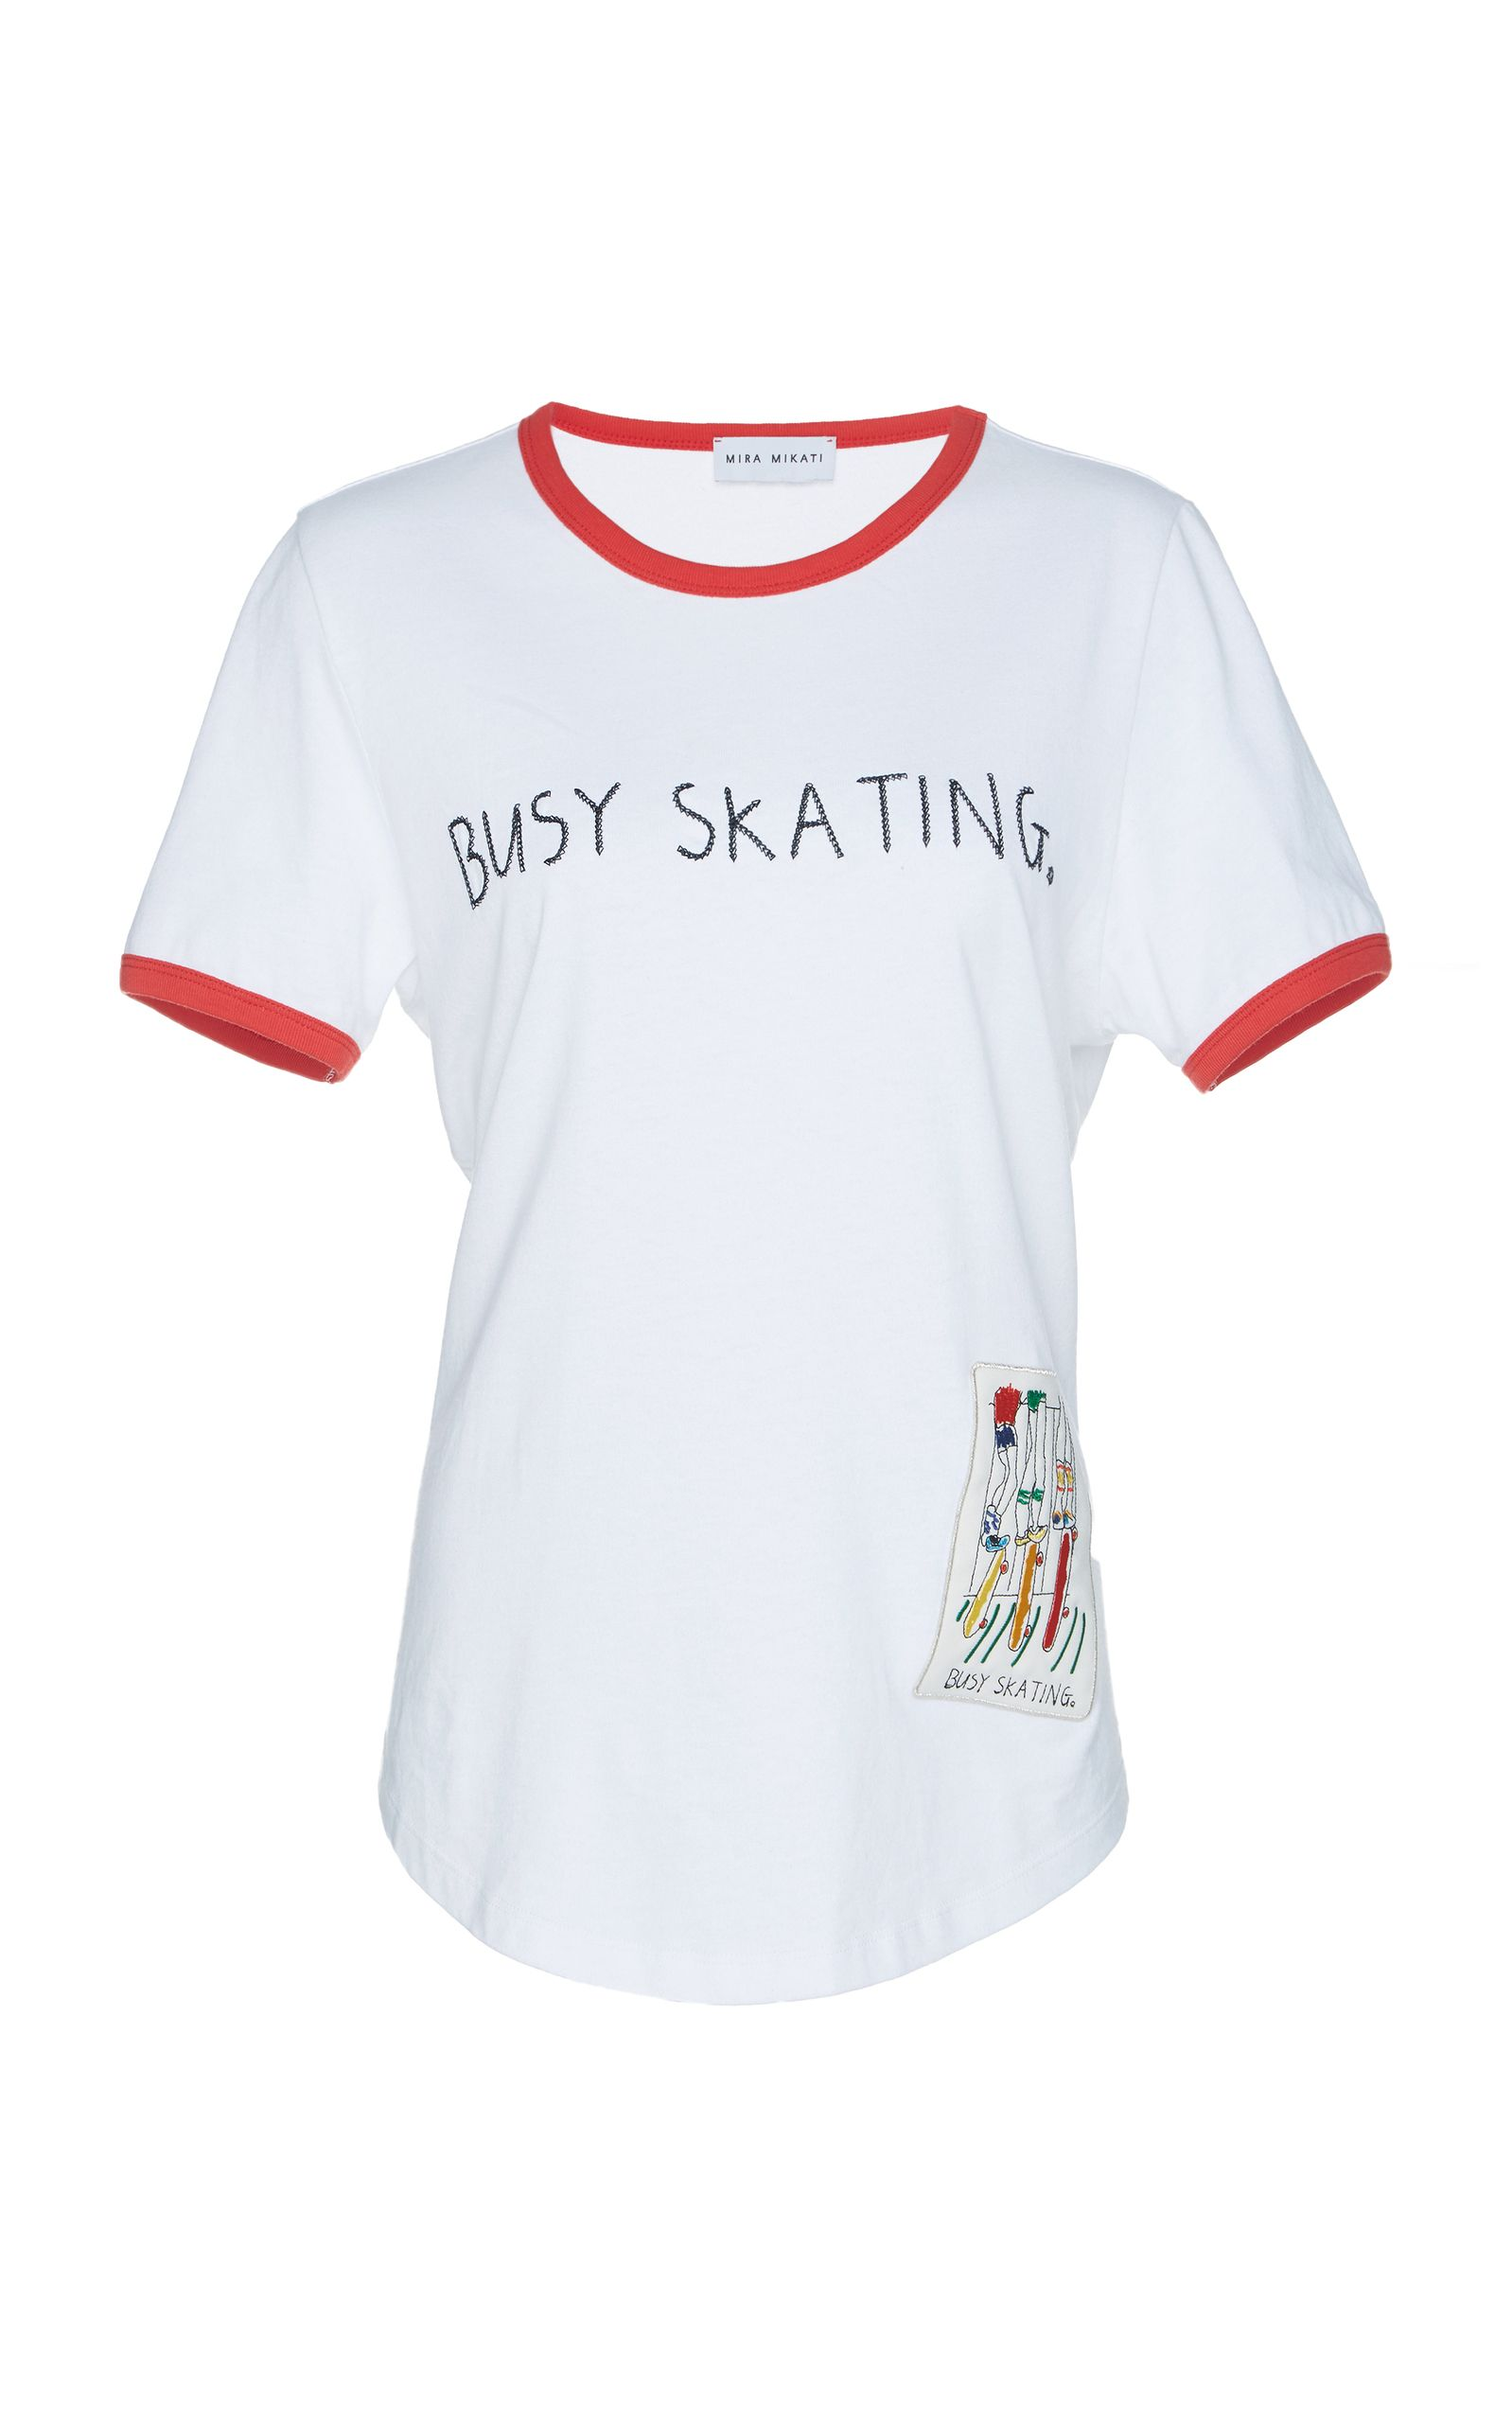 Busy Skating t shirt - White Mira Mikati Discount Newest View Online Clearance Store Cheap Online Recommend Cheap Online I7bX42hvLM